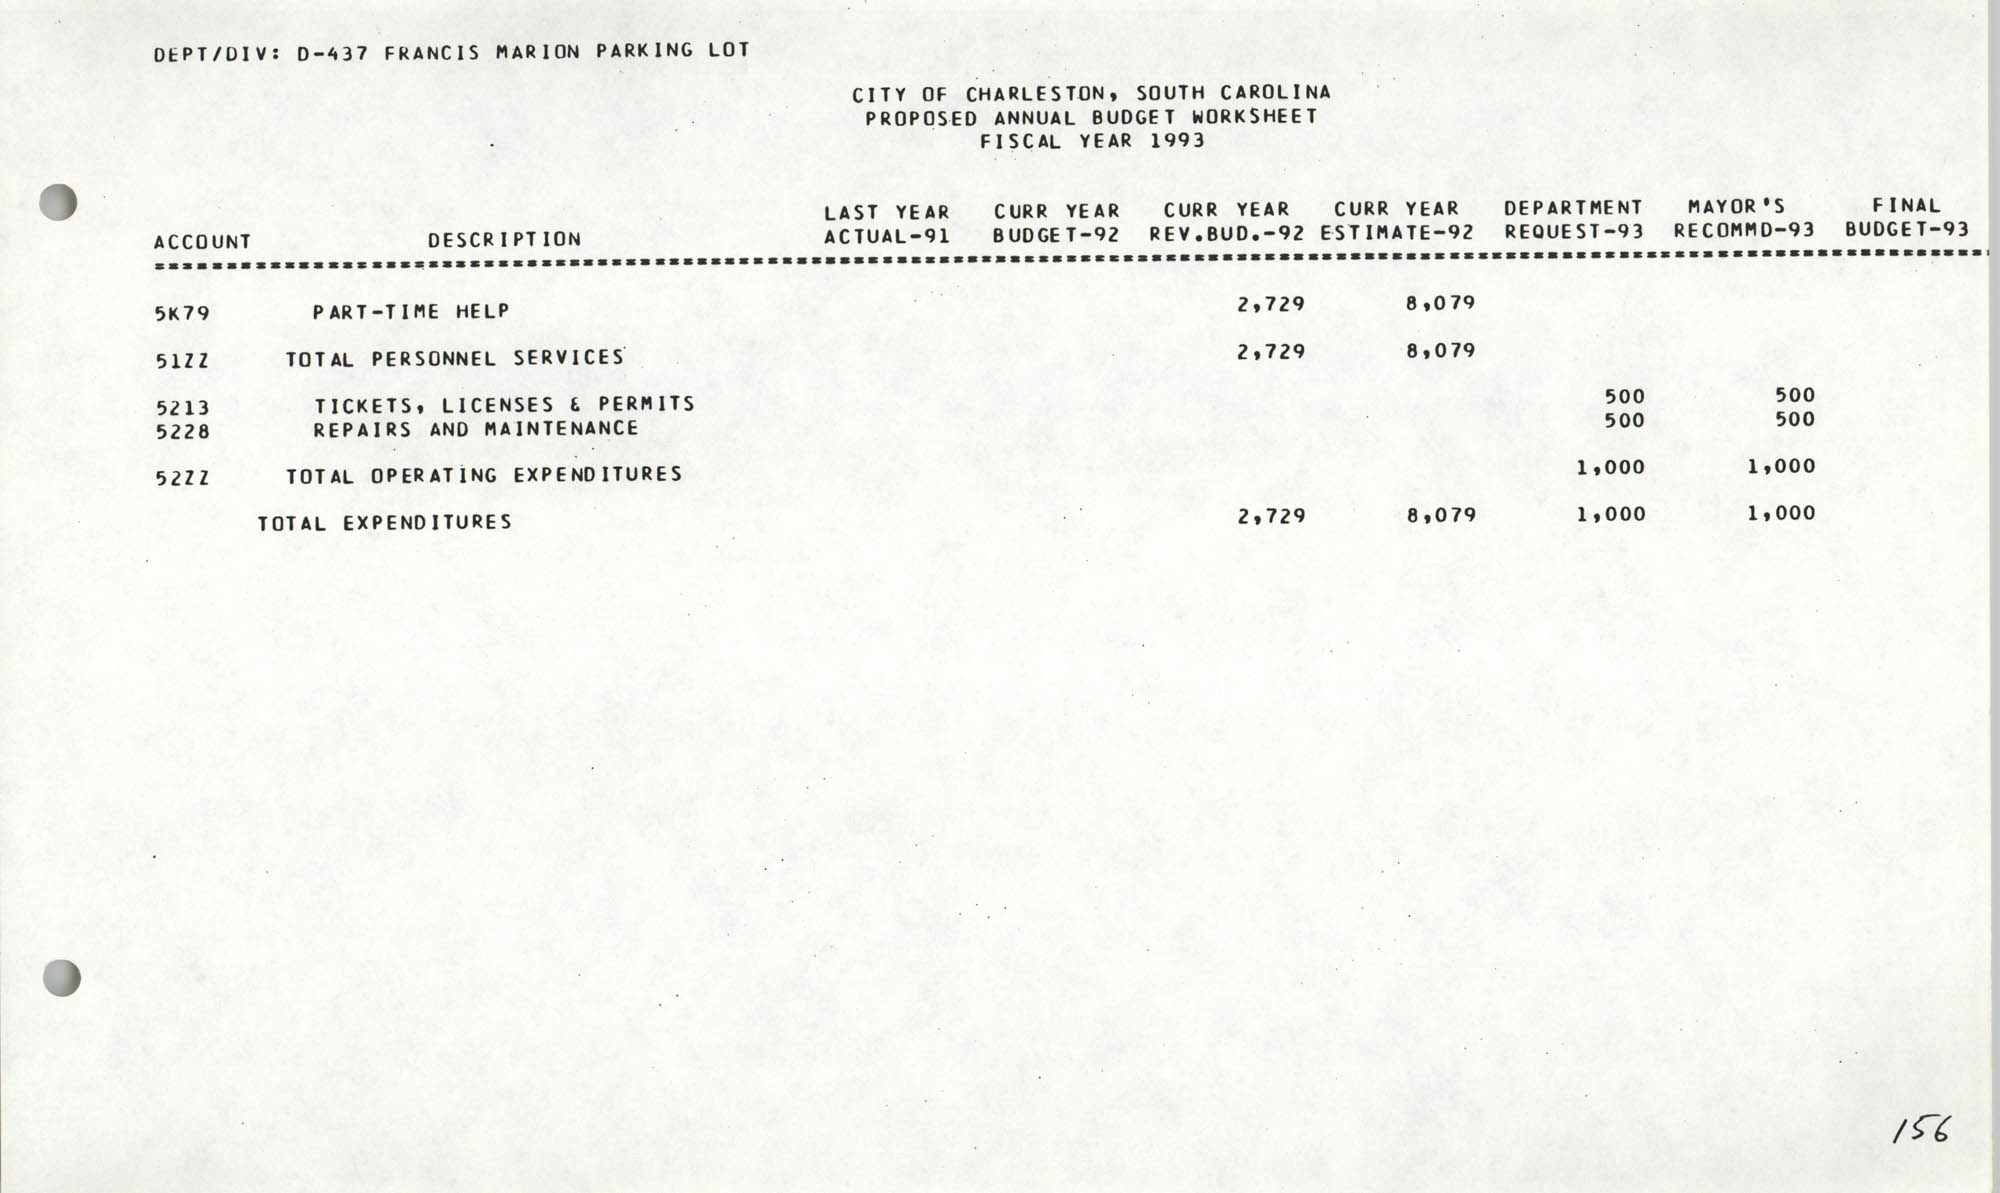 The City Council of Charleston, South Carolina, 1993 Budget, Page 156